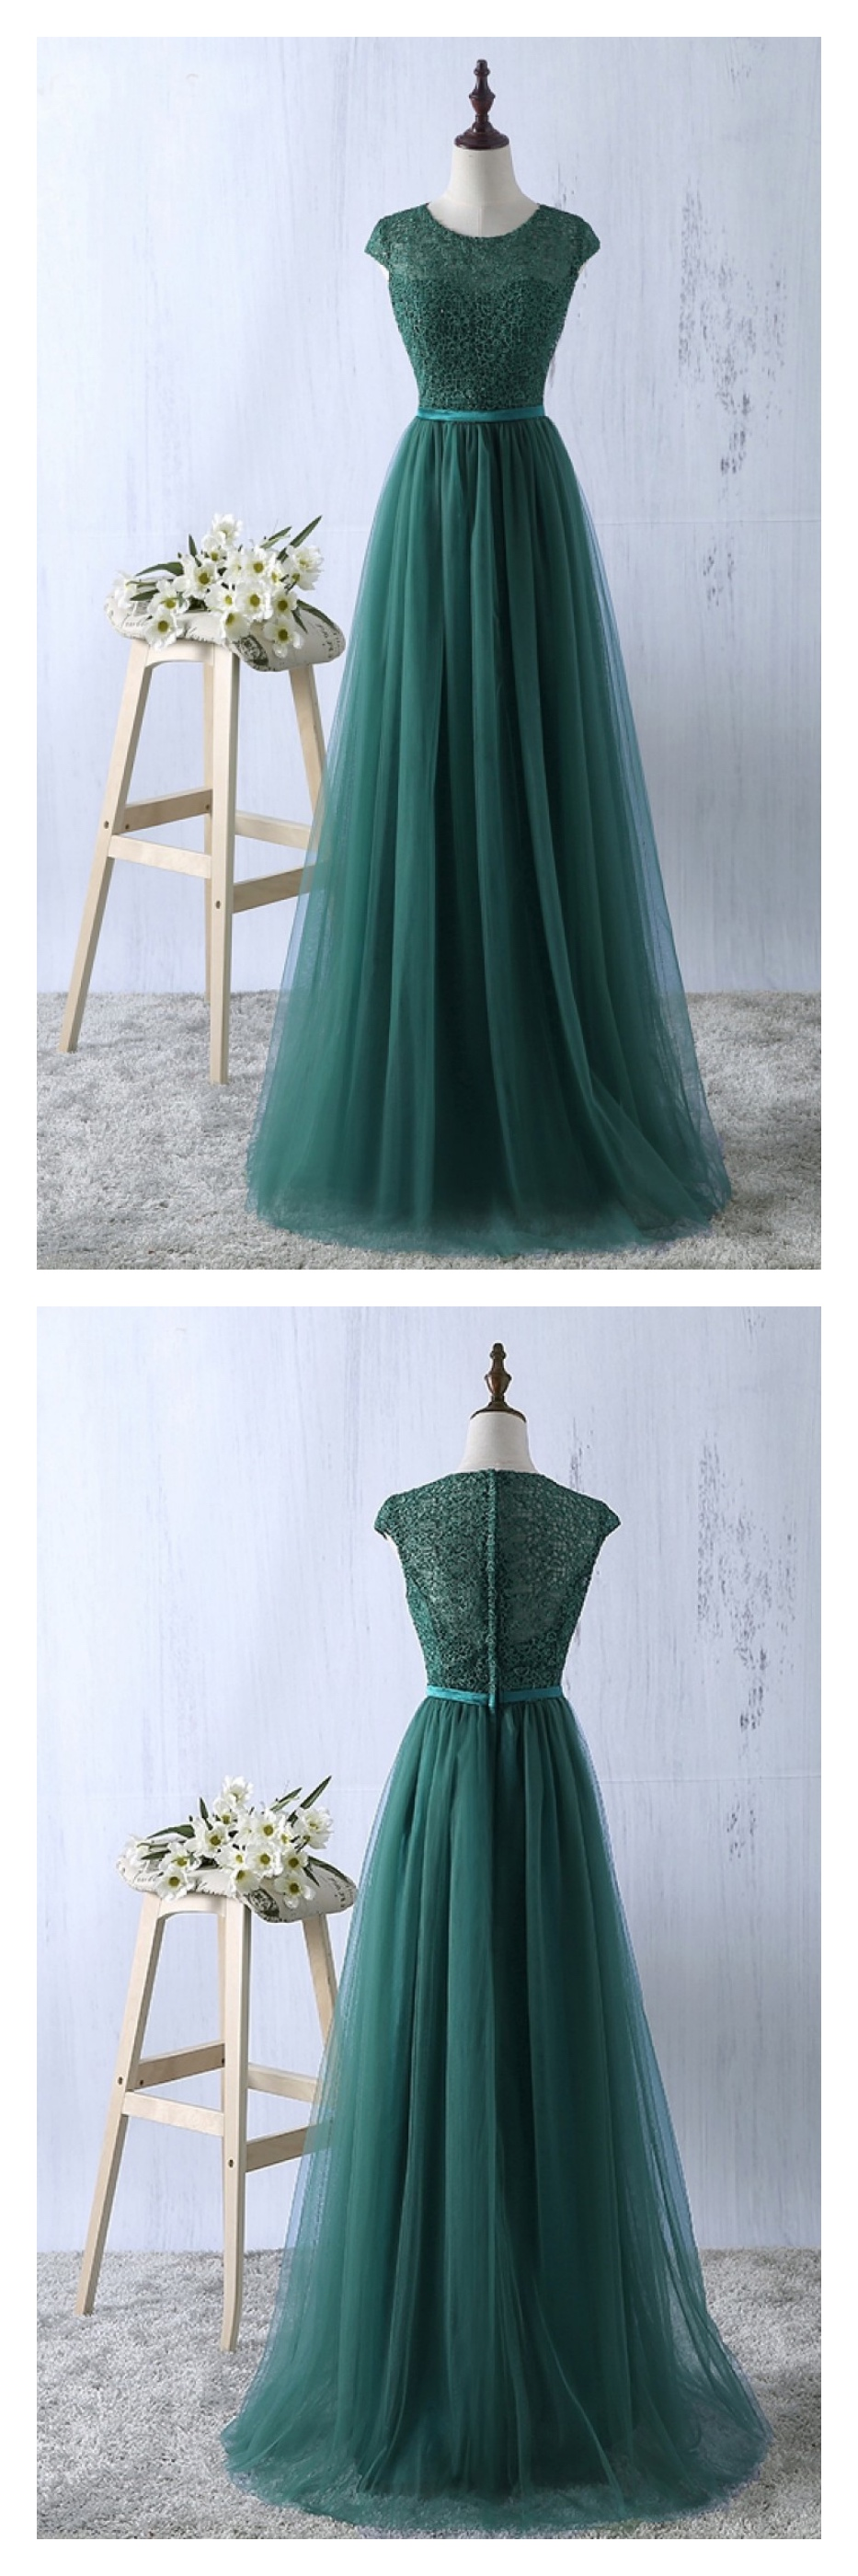 Emerald green prom dress  ALine Green Round Neck Cap Sleeves Long Prom DressED